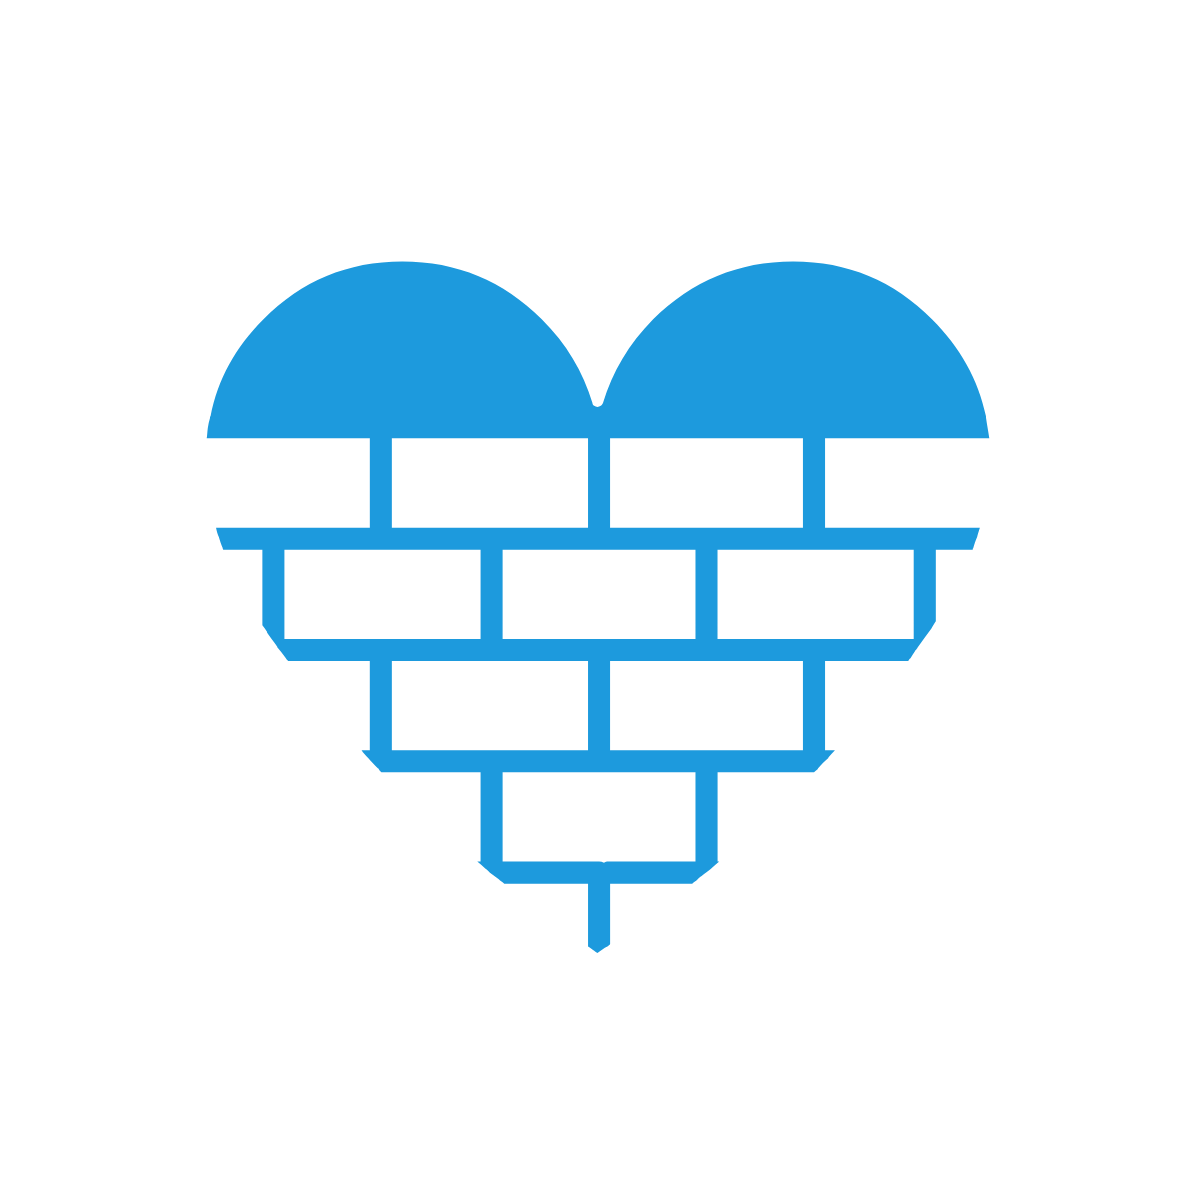 Icon of heart made out of bricks